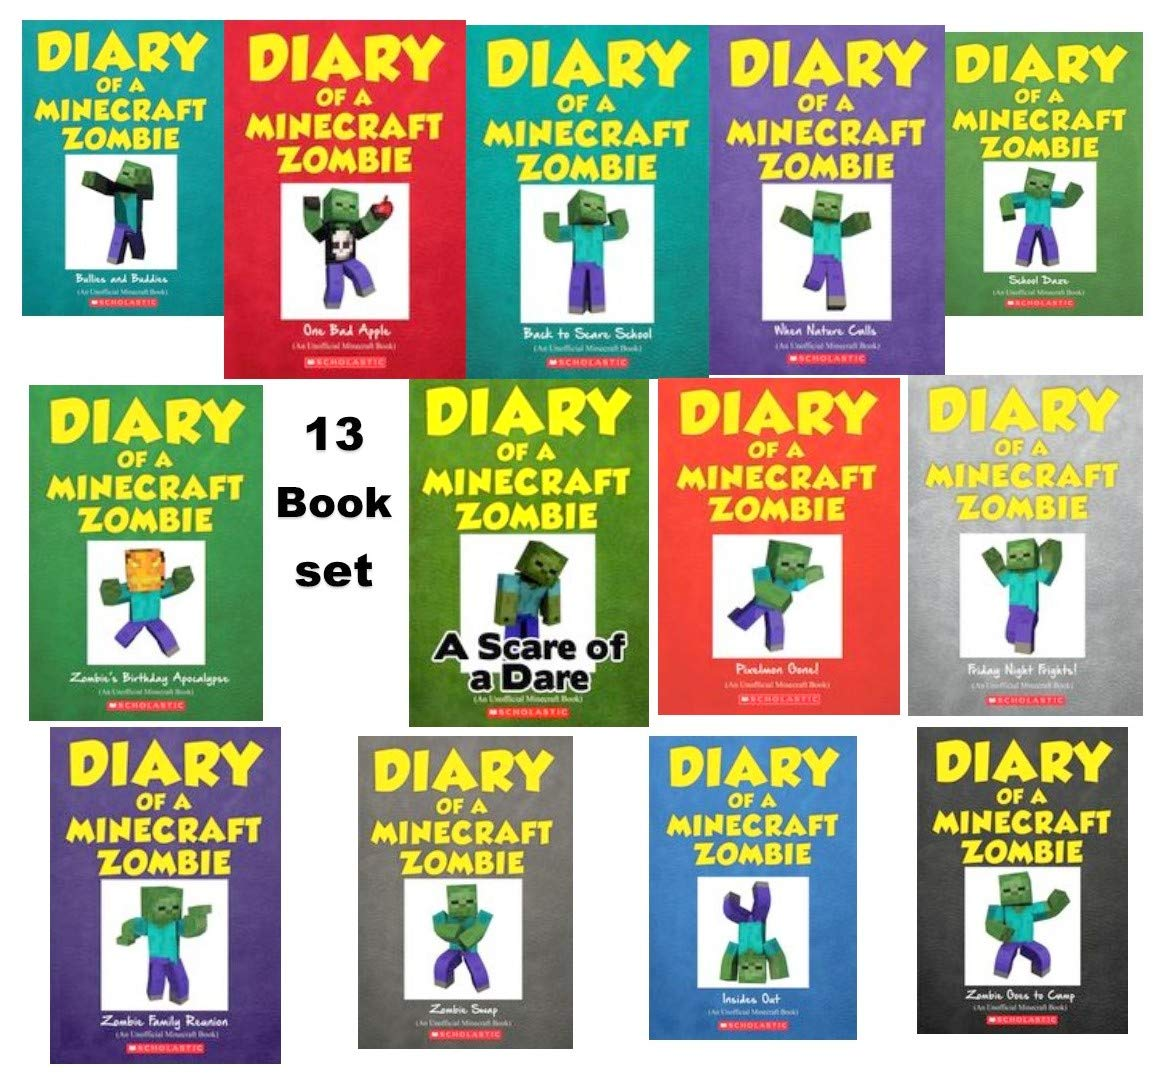 Diary of a Minecraft Zombie Book Vol 9-93 Collection 93 Books